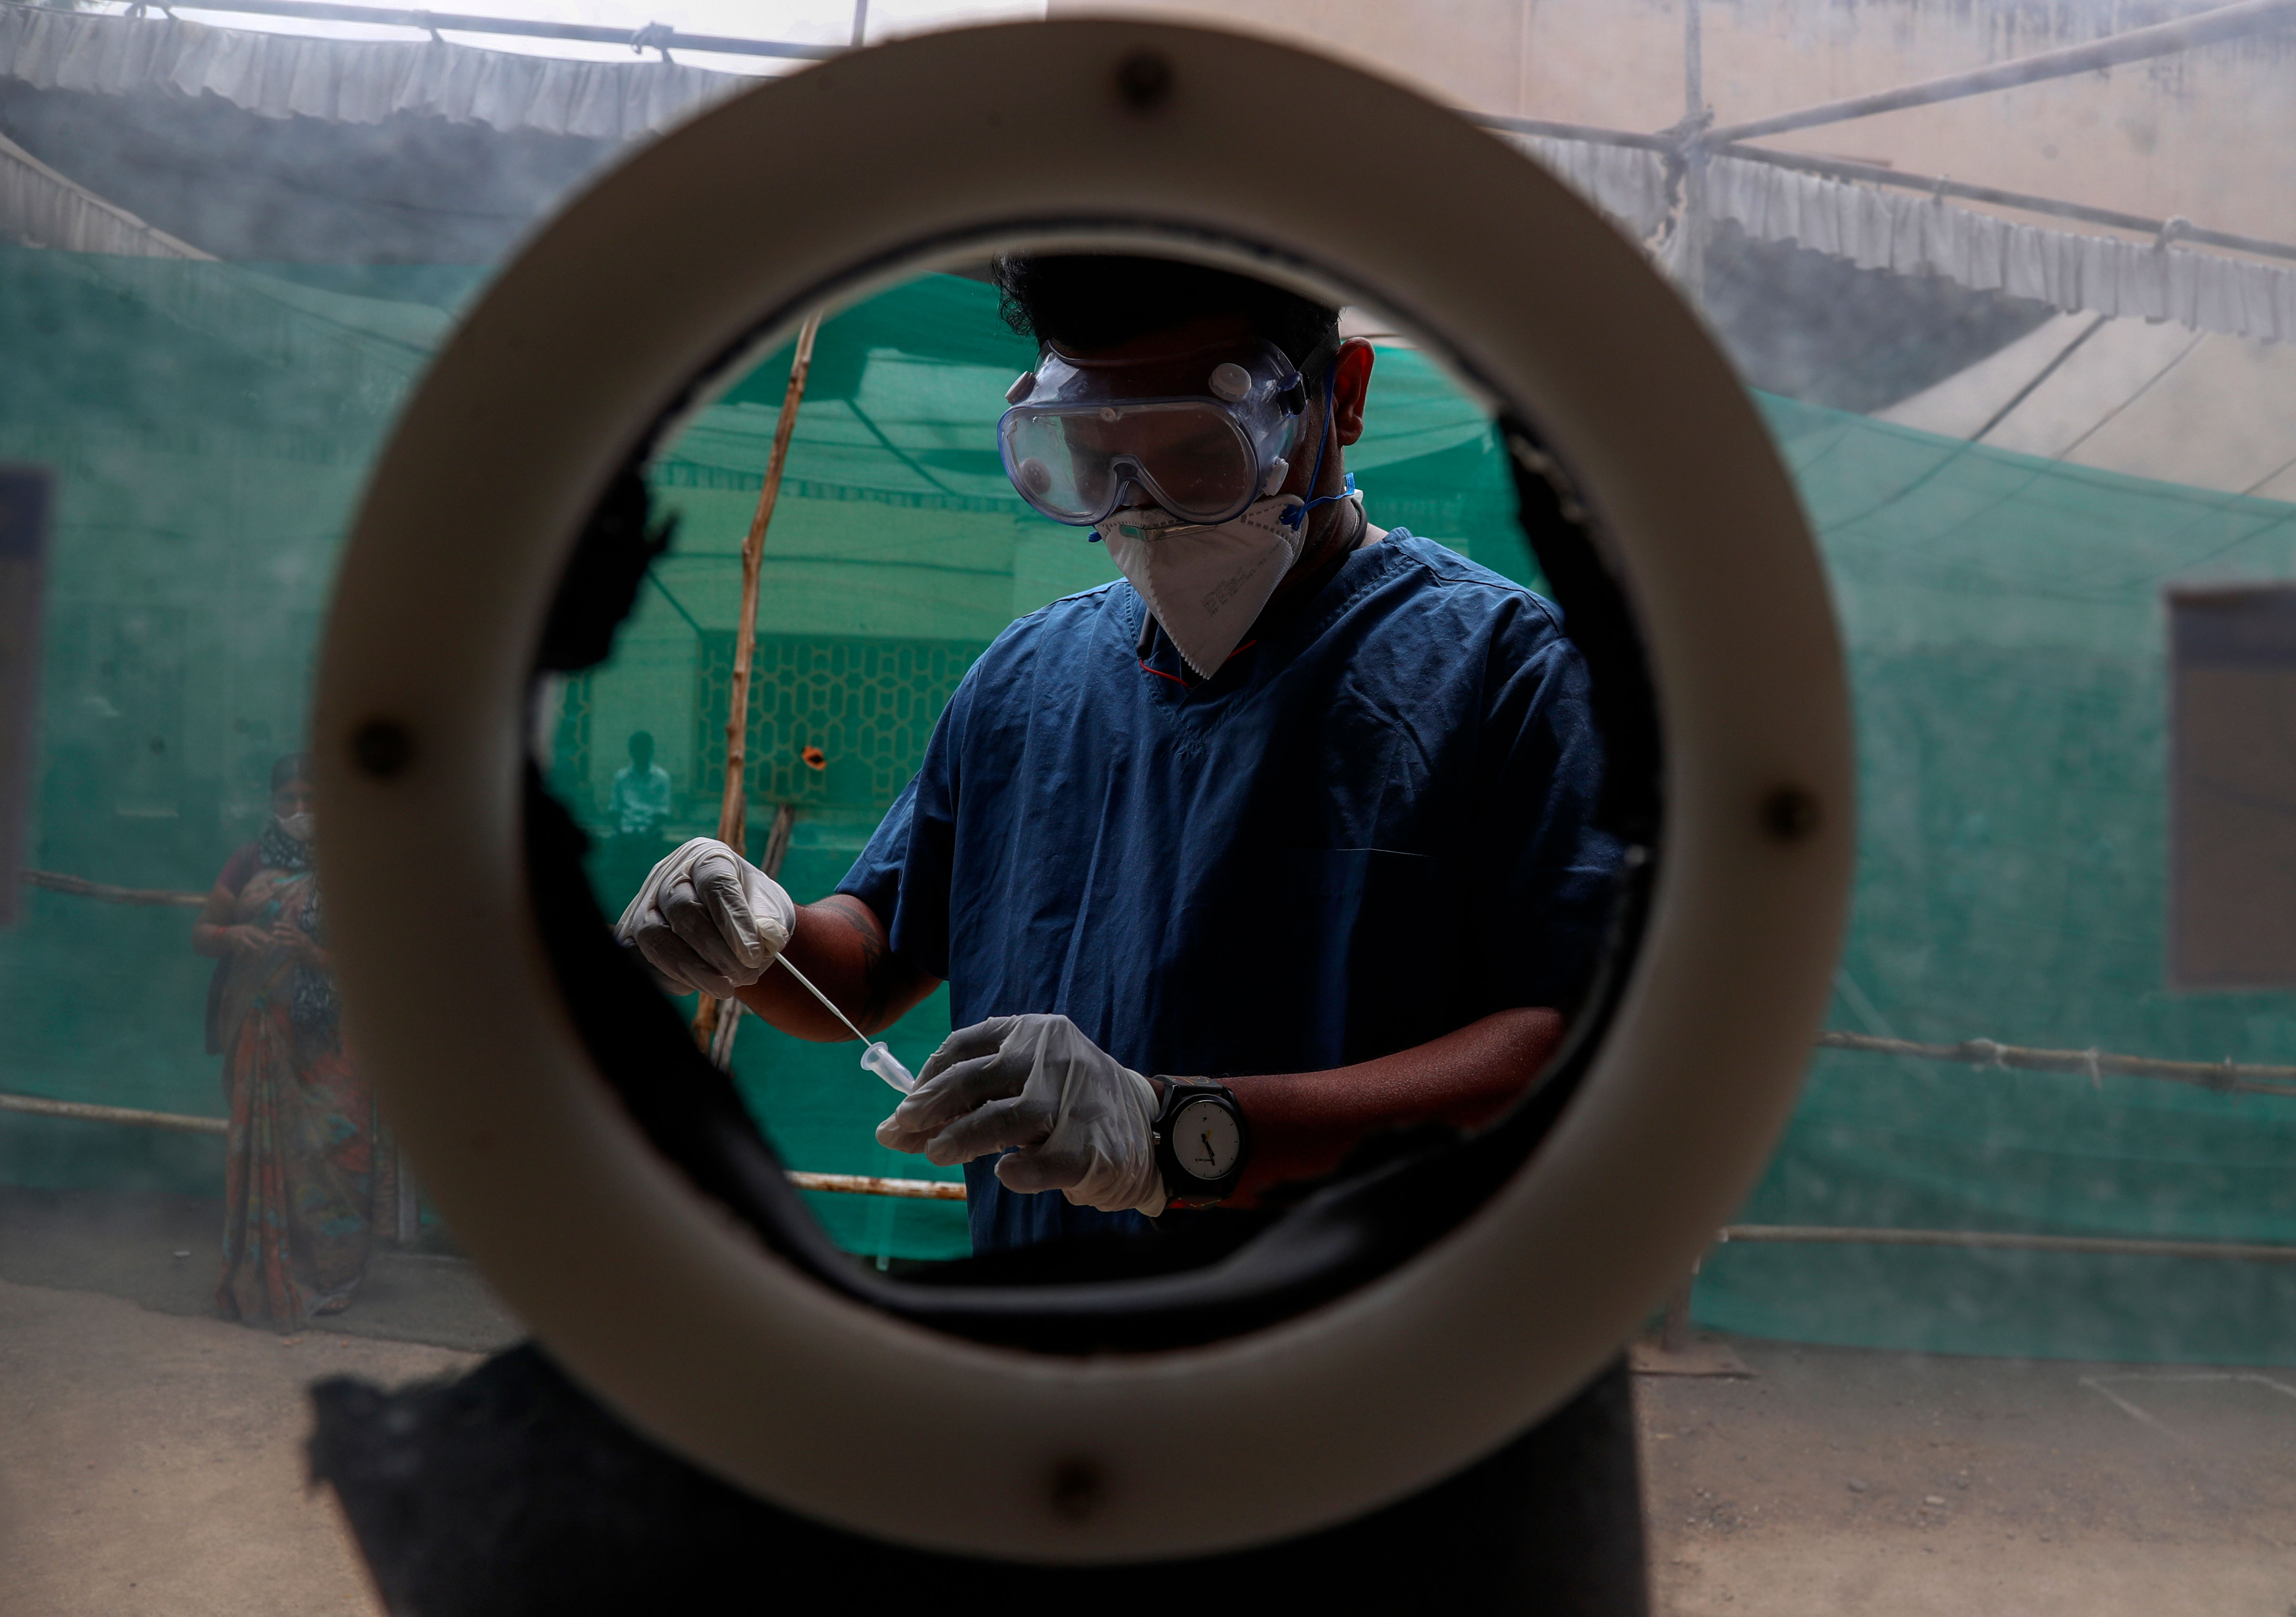 A health worker collects nasal swab samples at a Covid-19 testing center in Hyderabad, India, on April 12.